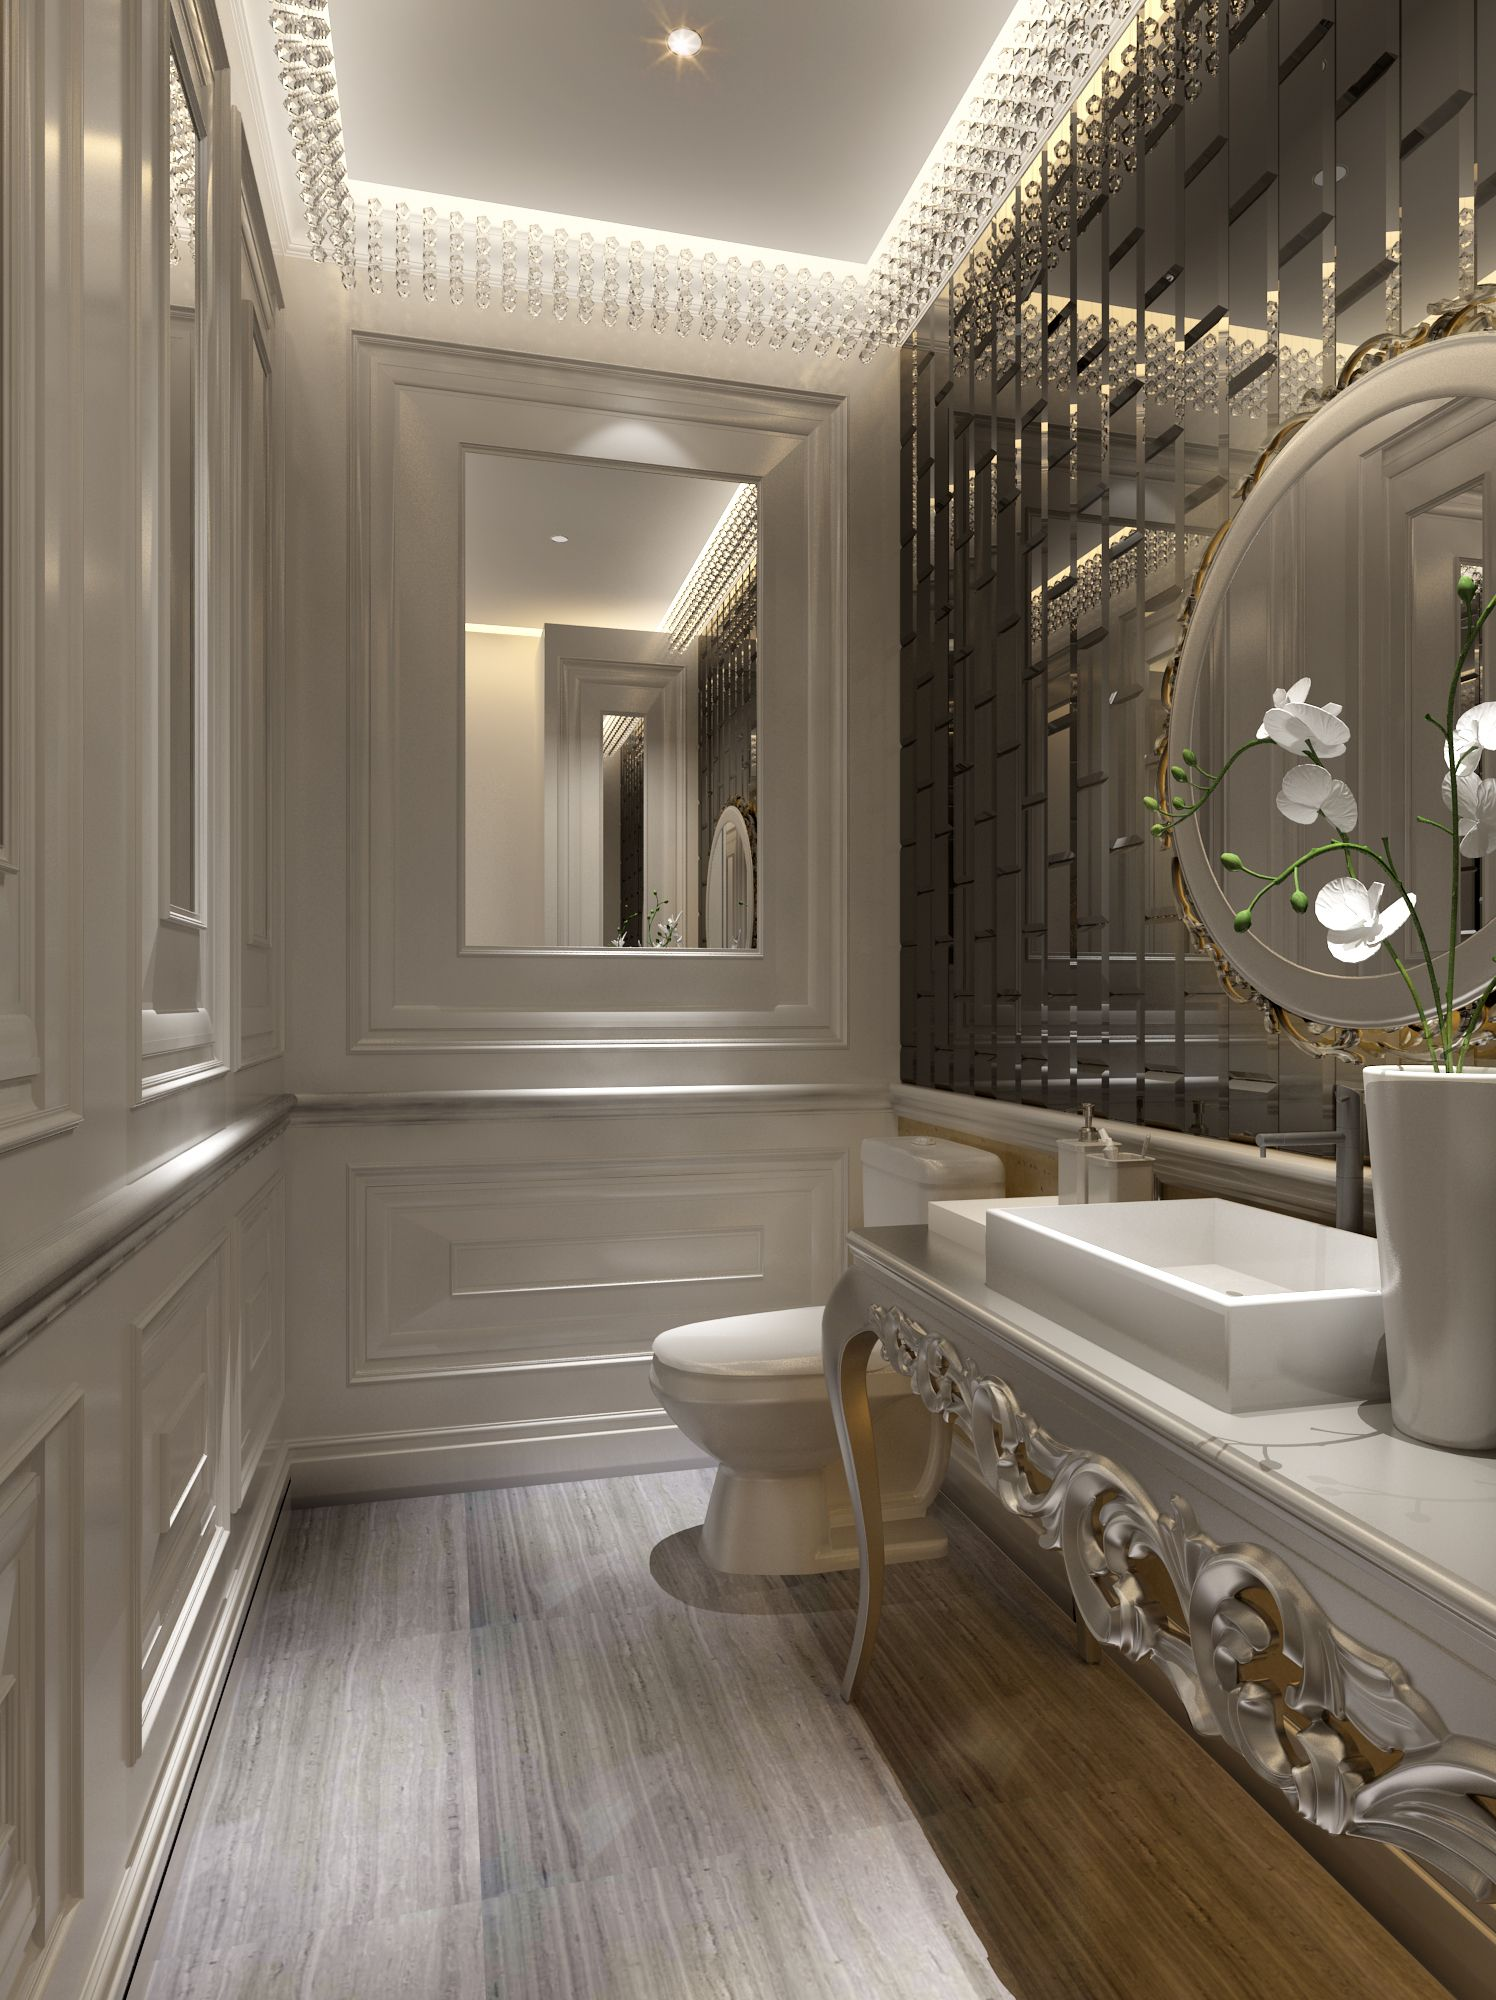 Small Bathroom Images Modern 30 Bathroom Sets Design Ideas With Images Contemporary